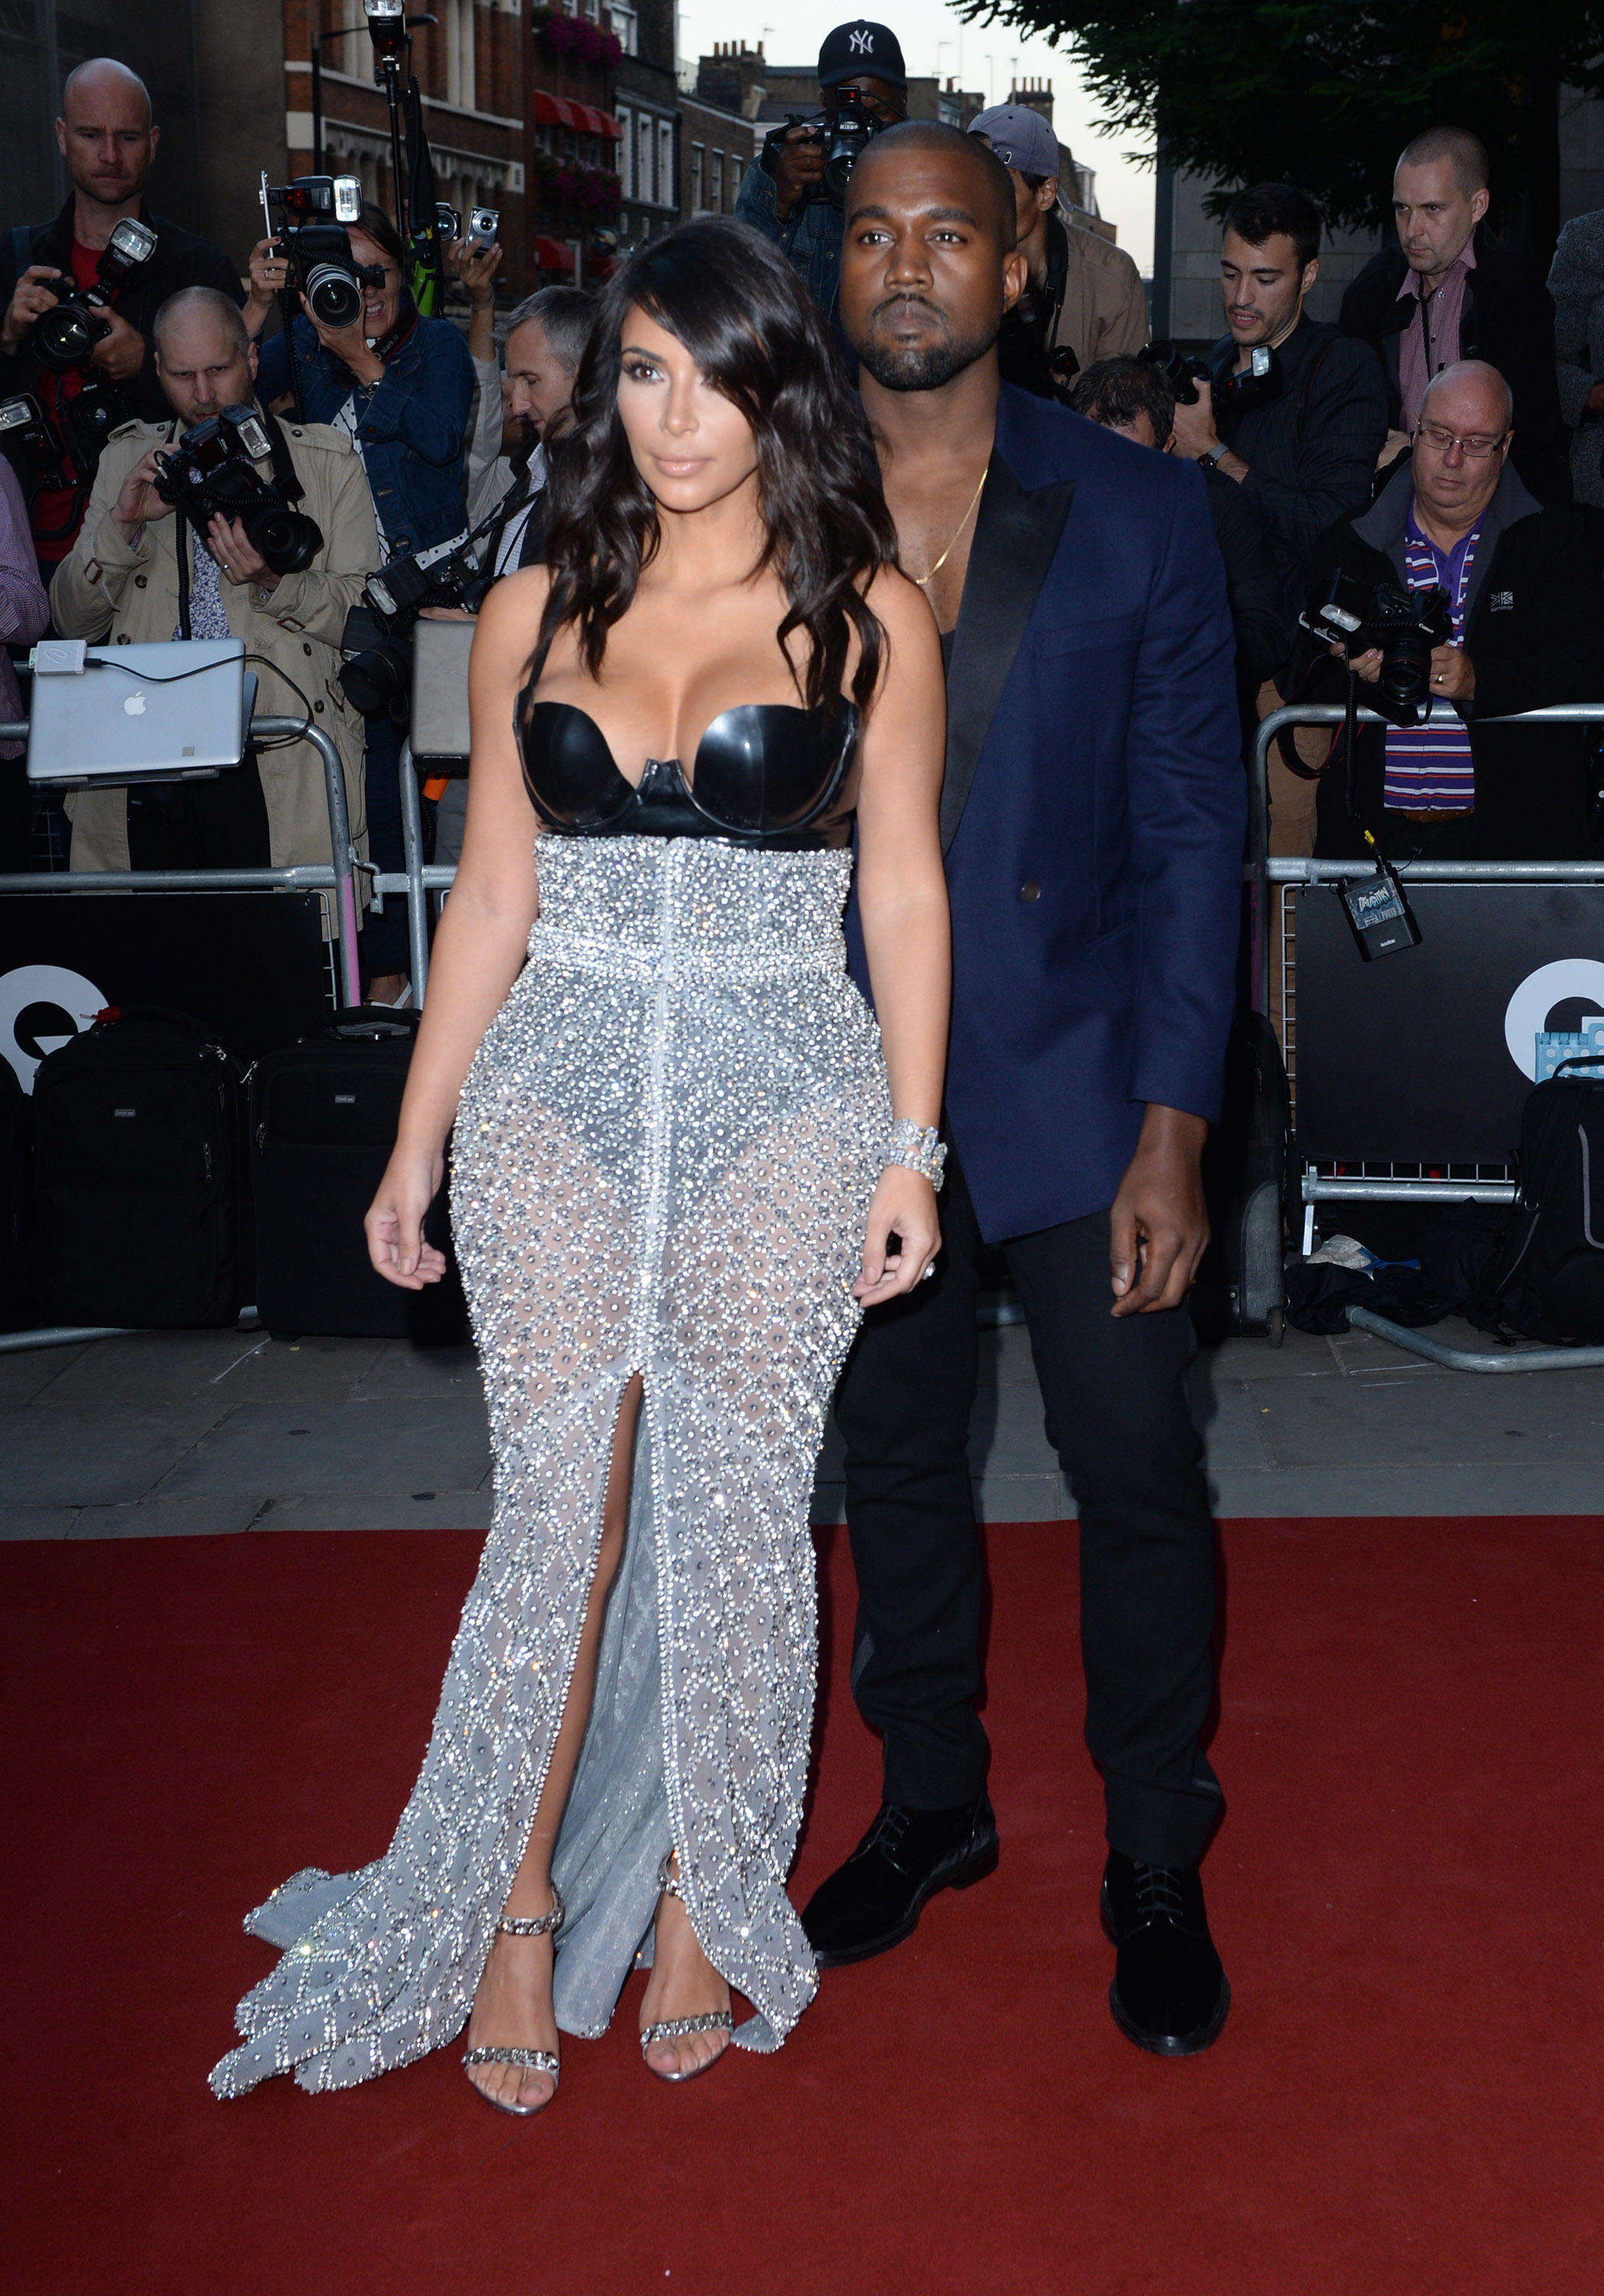 American Entrepeneur Kim Kardashian And Musician Kanye West Attend The